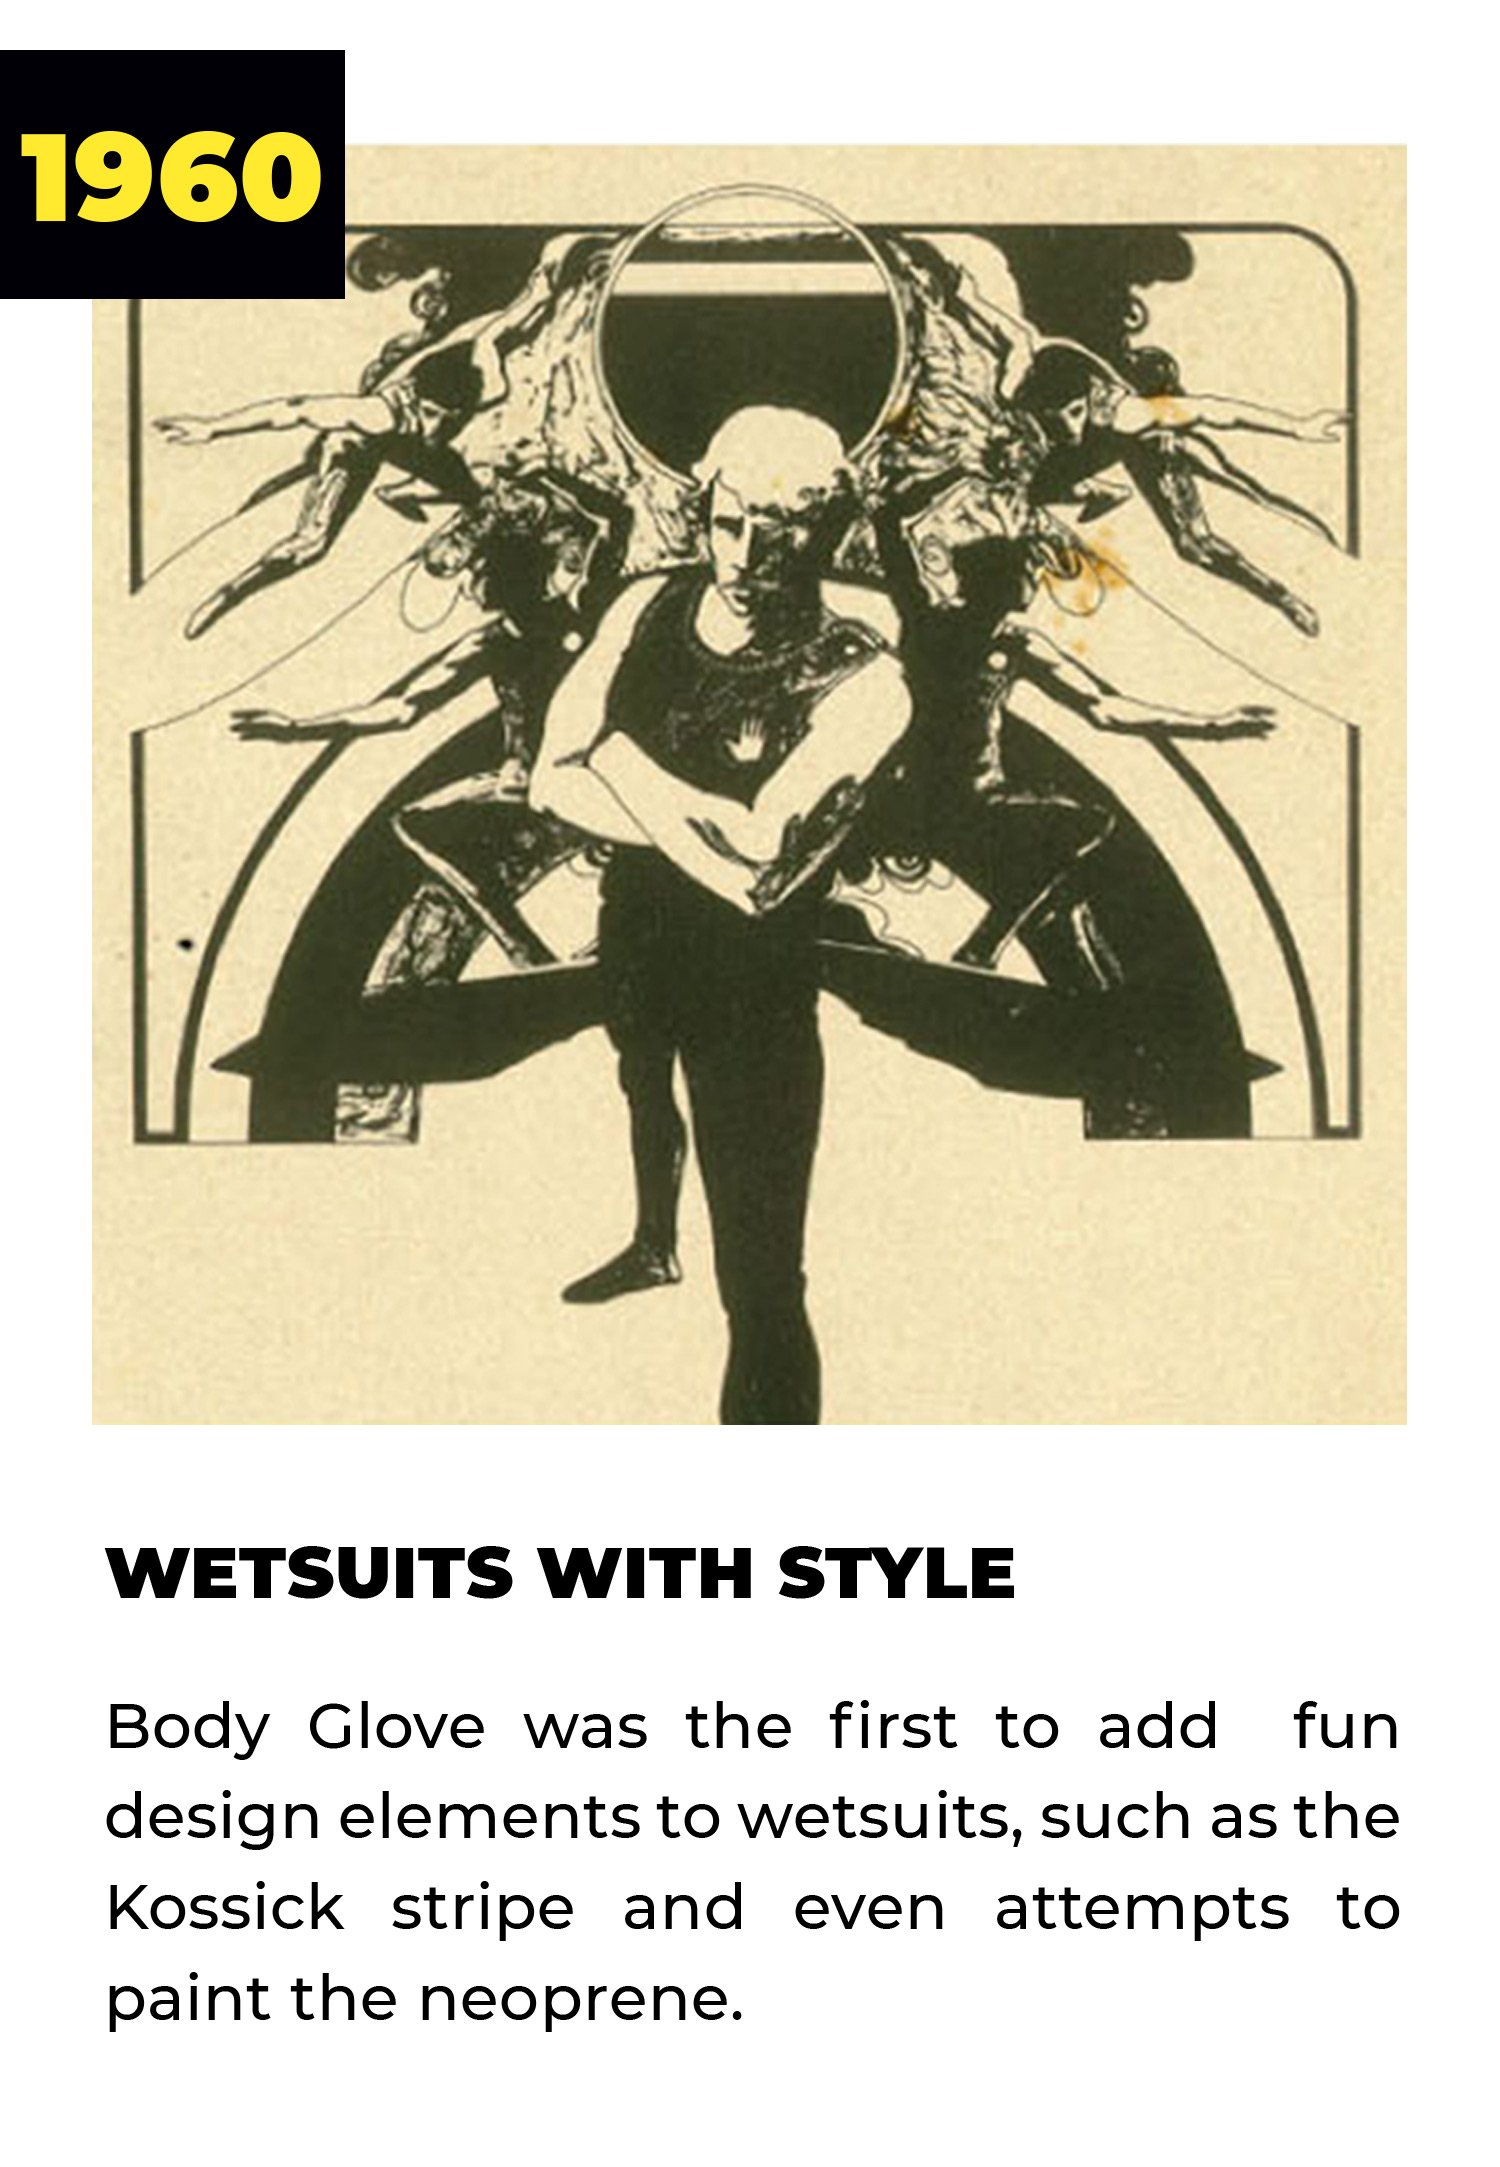 1960 | Wetsuits with Style | Body Glove was the first to add fun design elements to wetsuits, such as the Kossick stripe and even attempts to paint the neoprene.